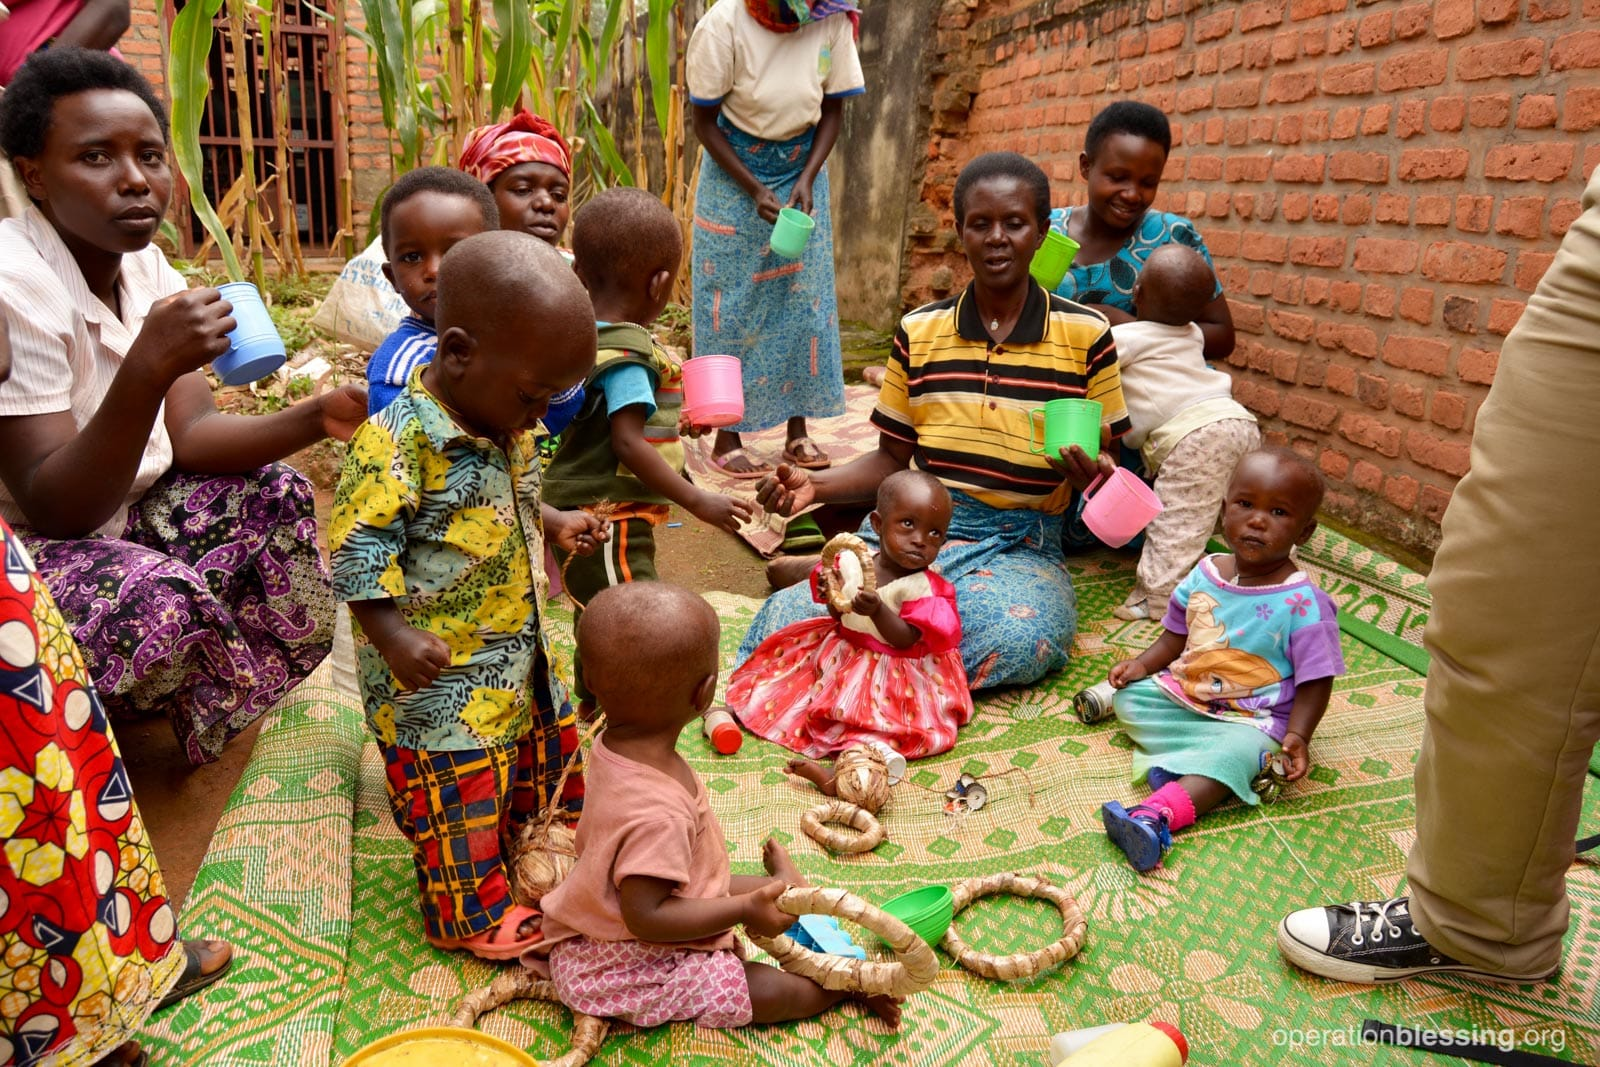 Dubudonnee and other children in the Gardens for Health program enjoy snacks and playtime with the staff while their mothers learn about good nutrition.